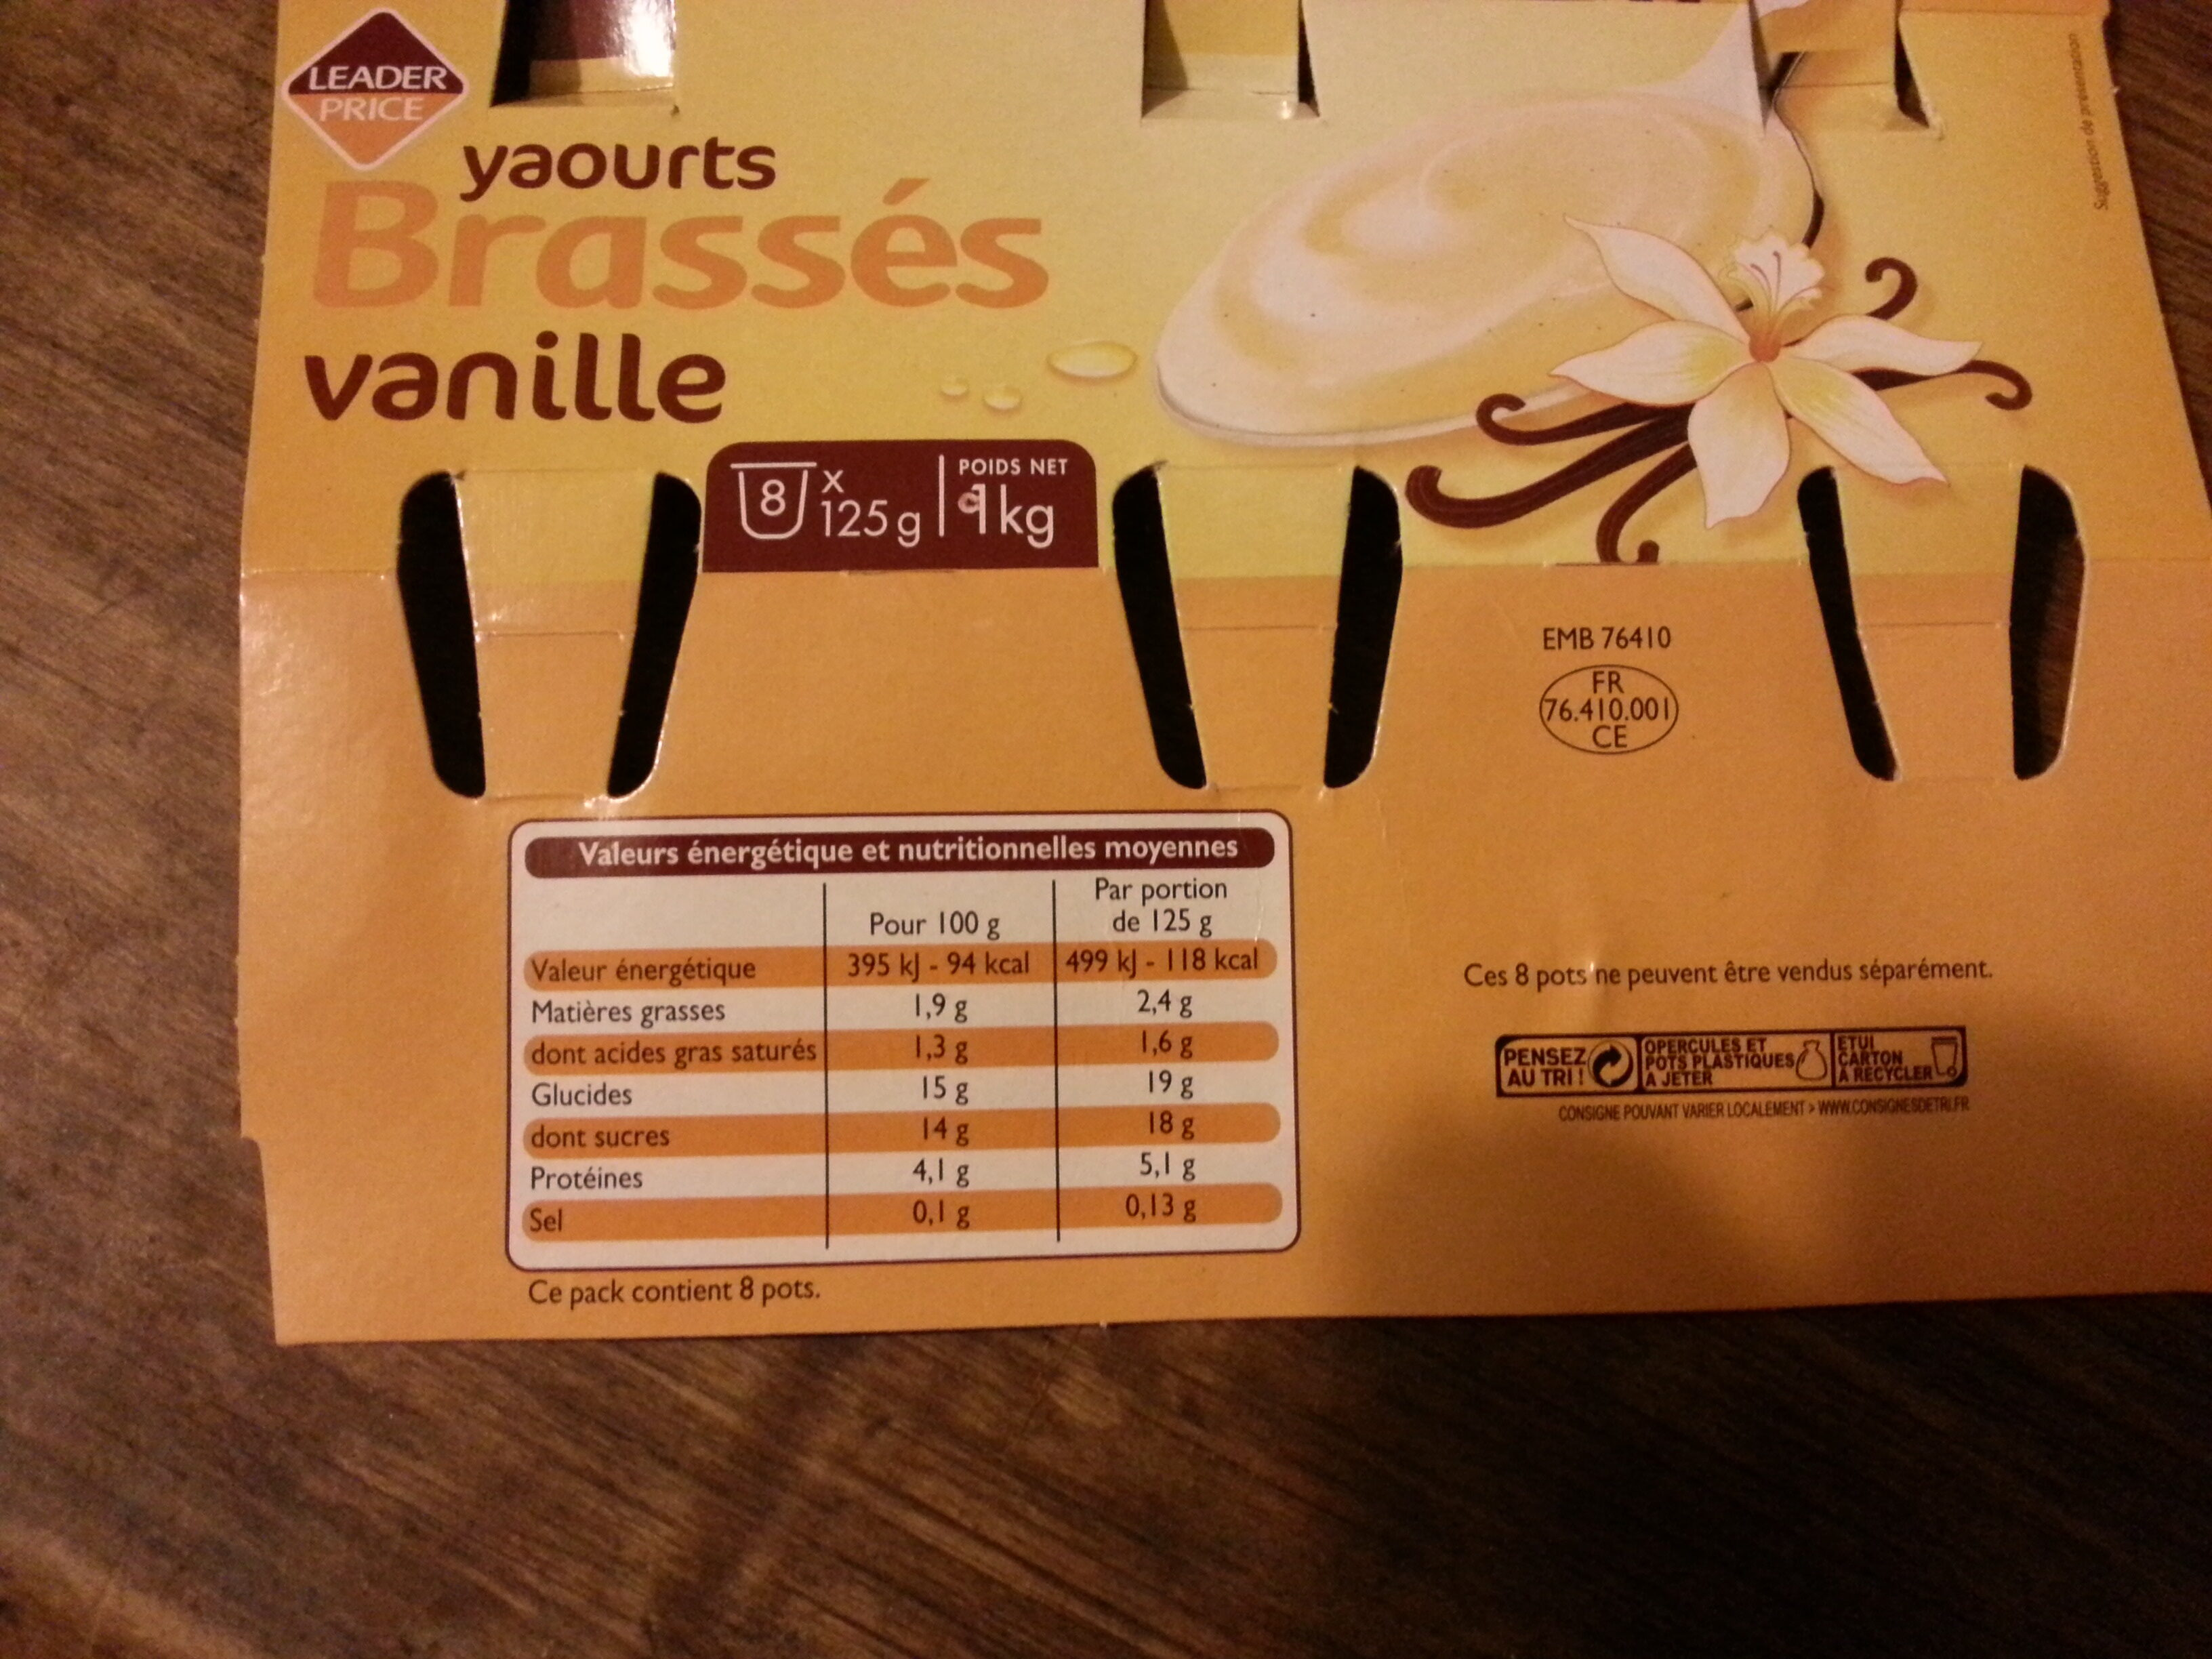 Yaourts Brassés vanille - Nutrition facts